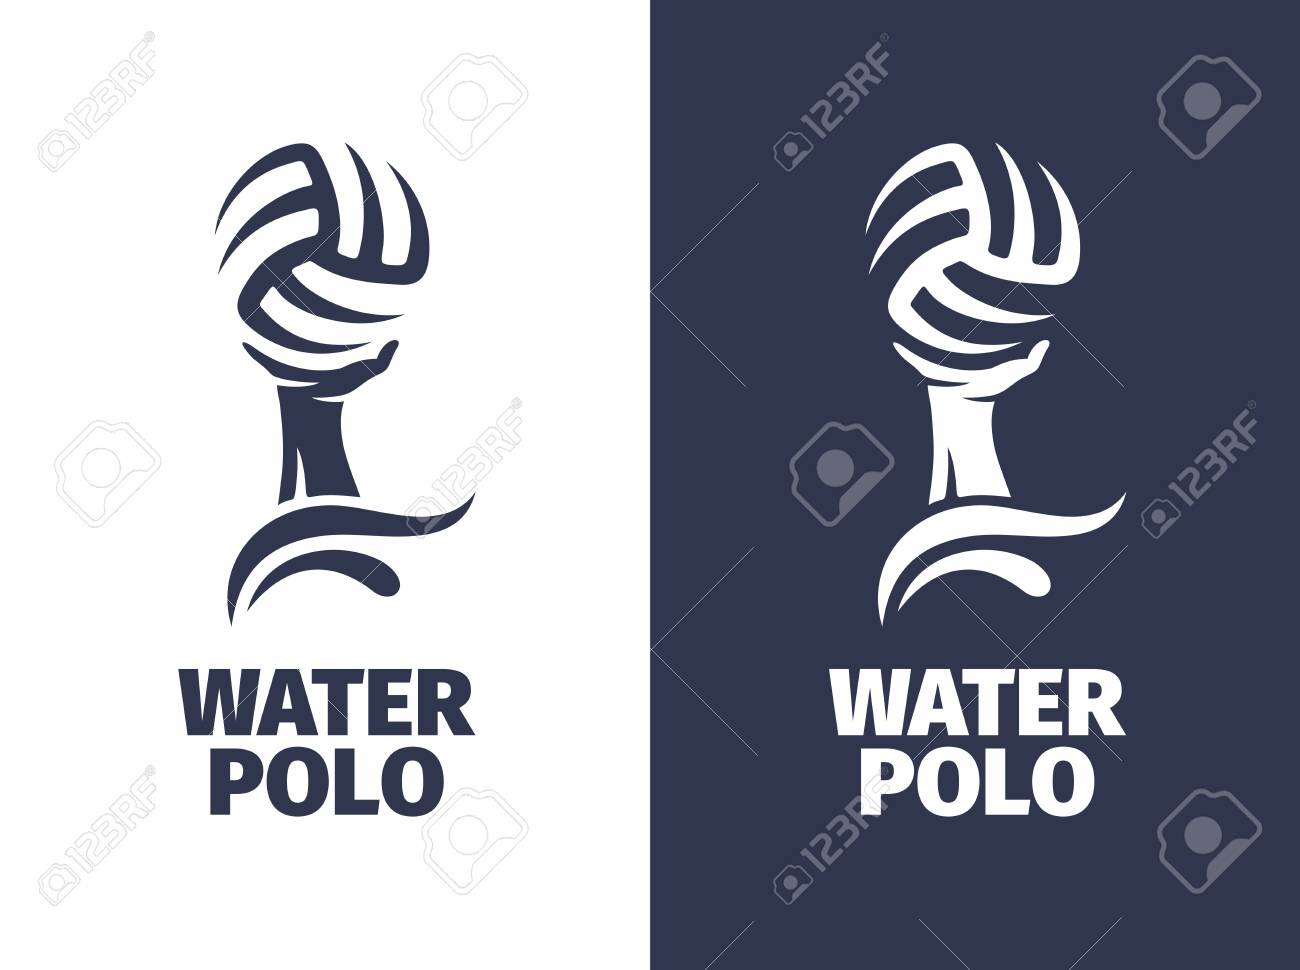 Modern vector professional sign - water polo. - 89766133